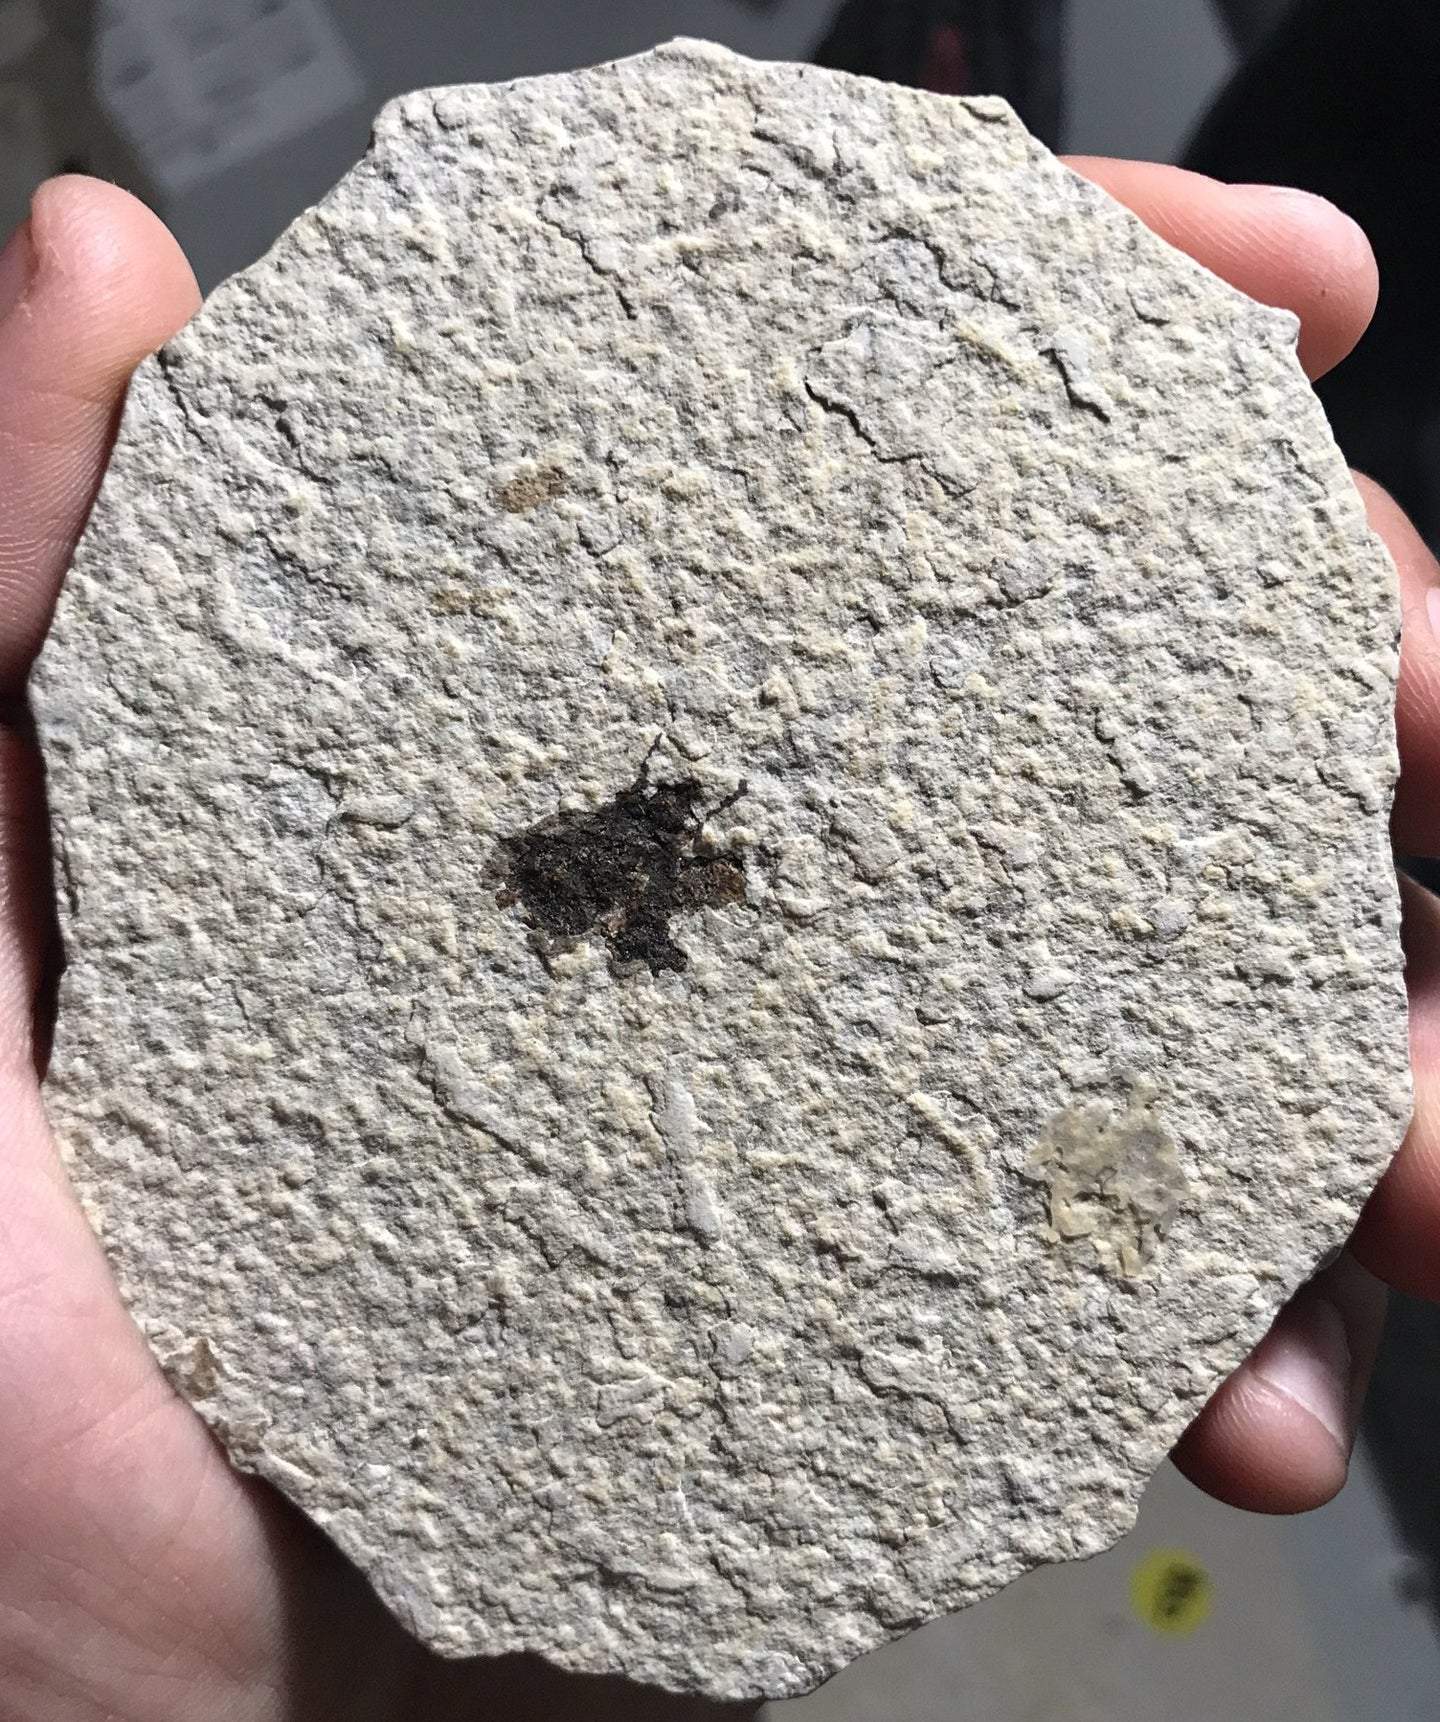 Fossil Fly from Kemmerer, Wyoming - Fossil Daddy